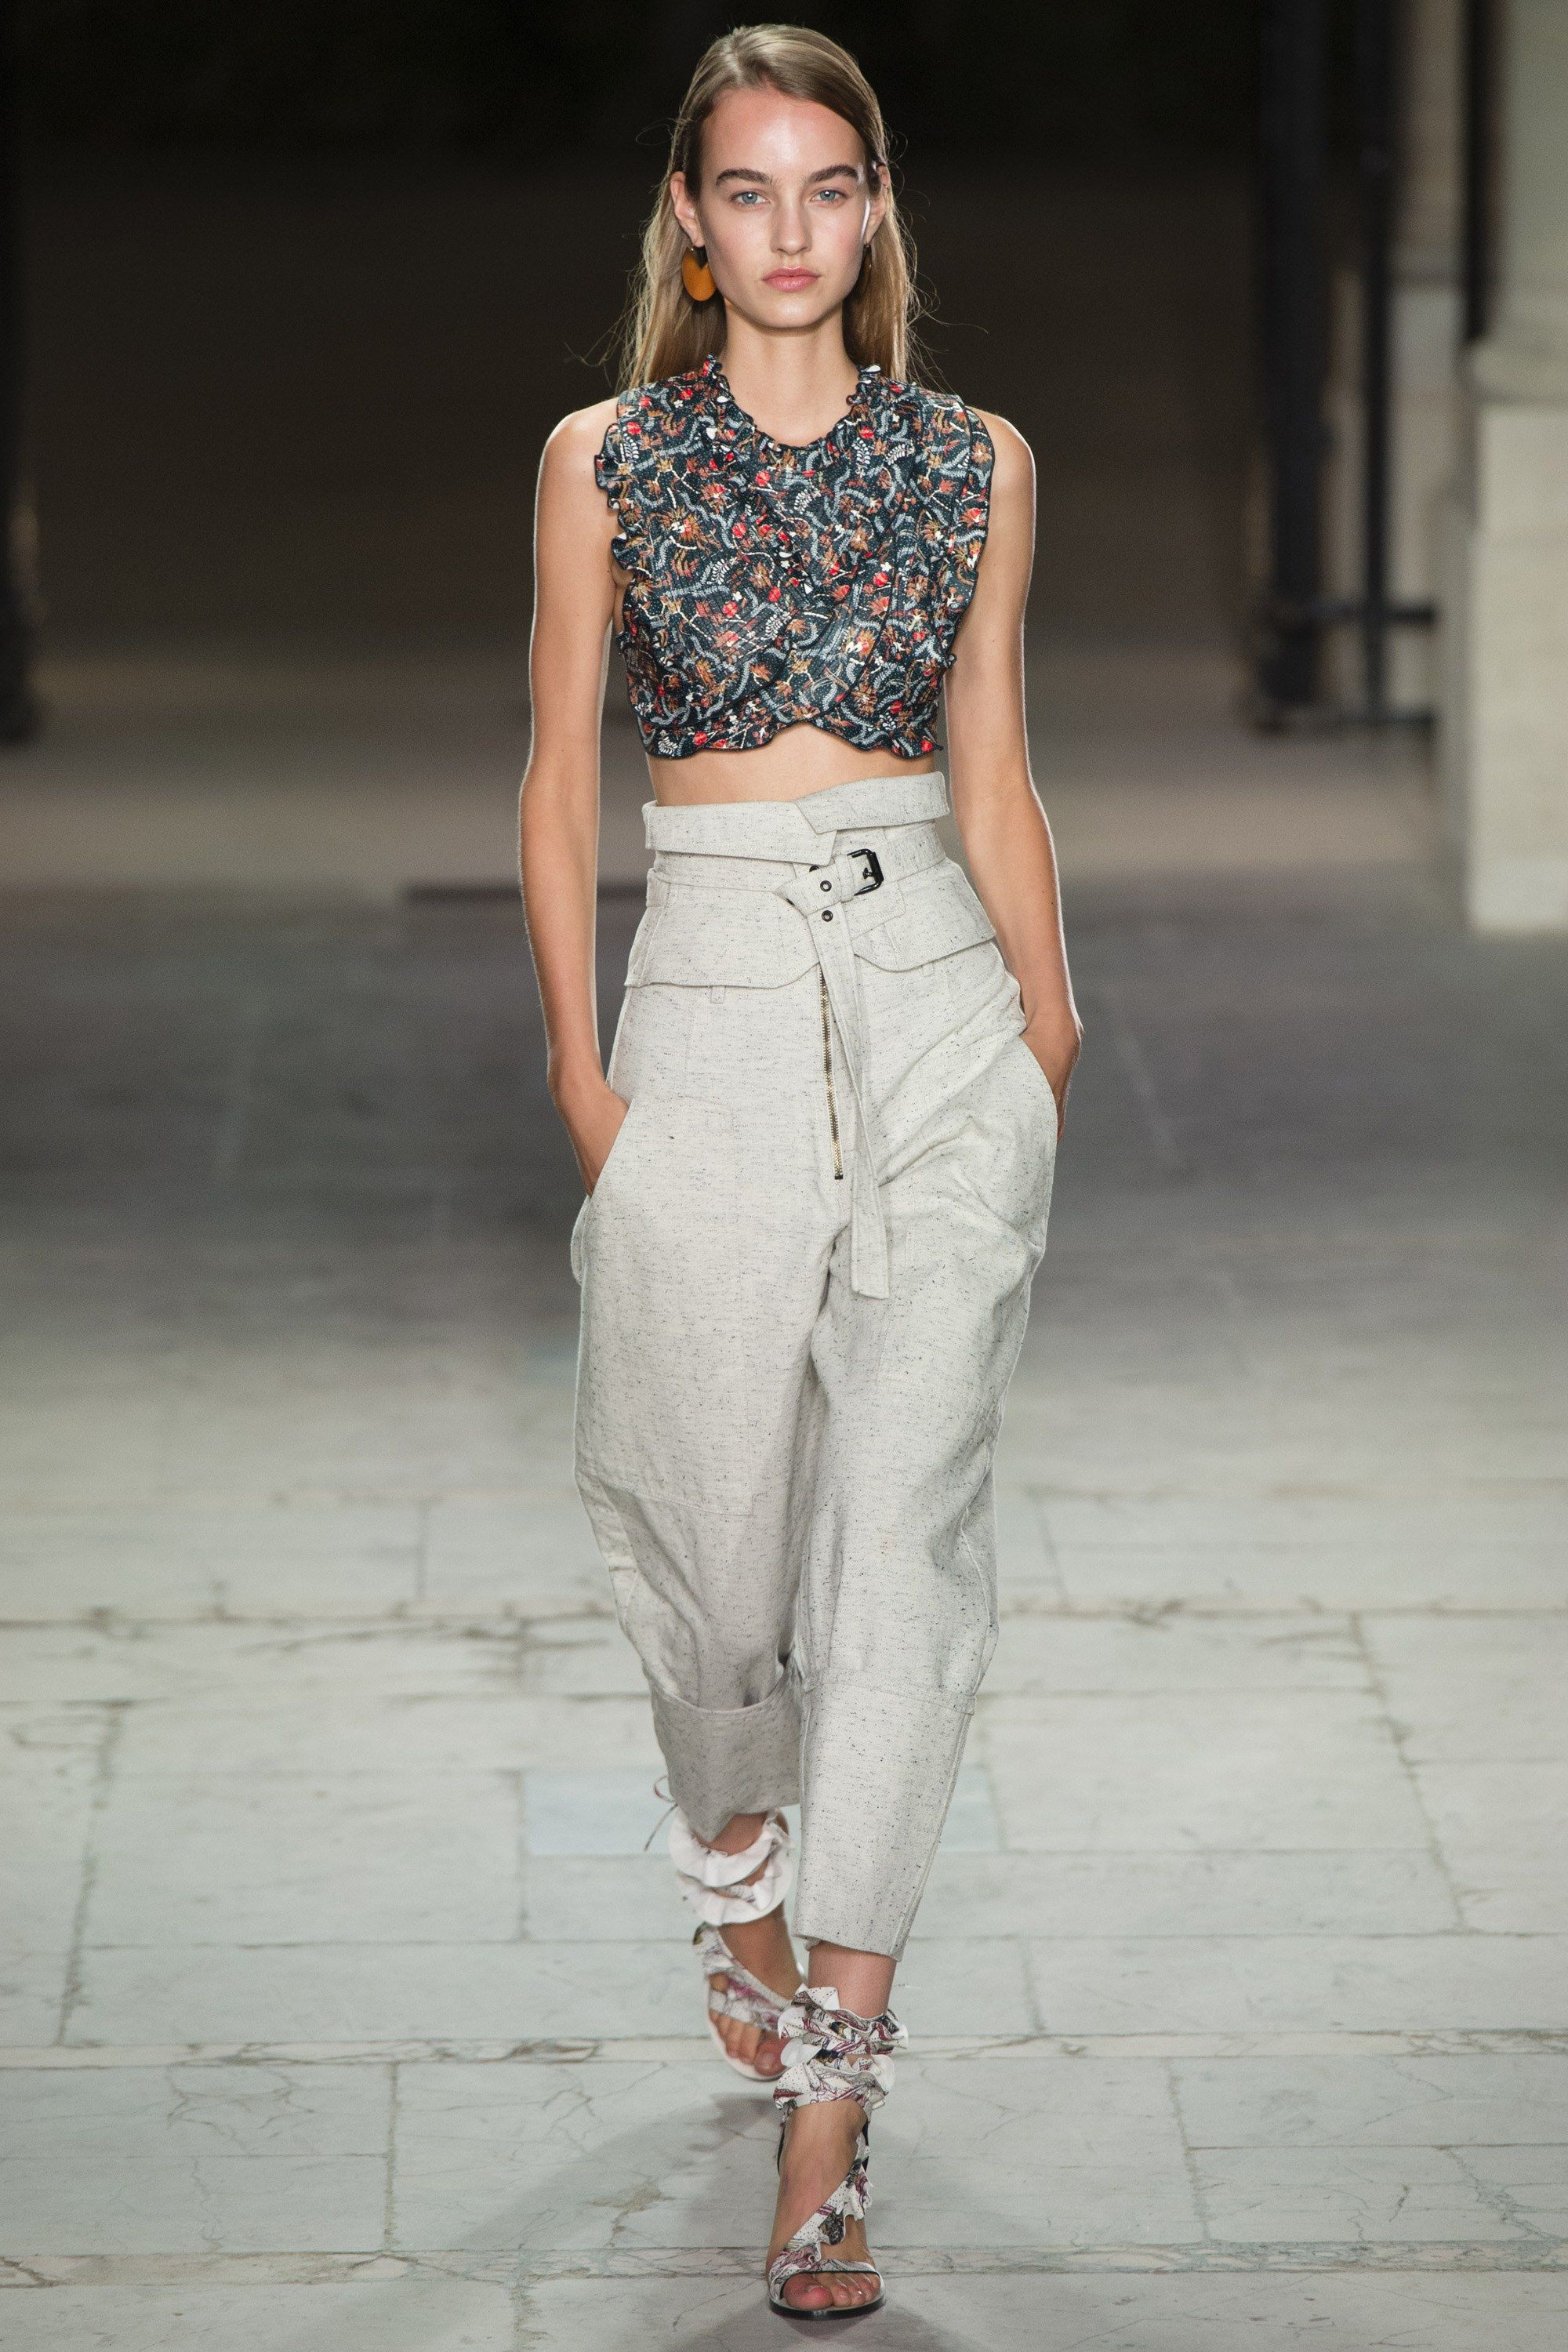 a3caec91a7b Isabel Marant Spring 2017 Ready-to-Wear Fashion Show